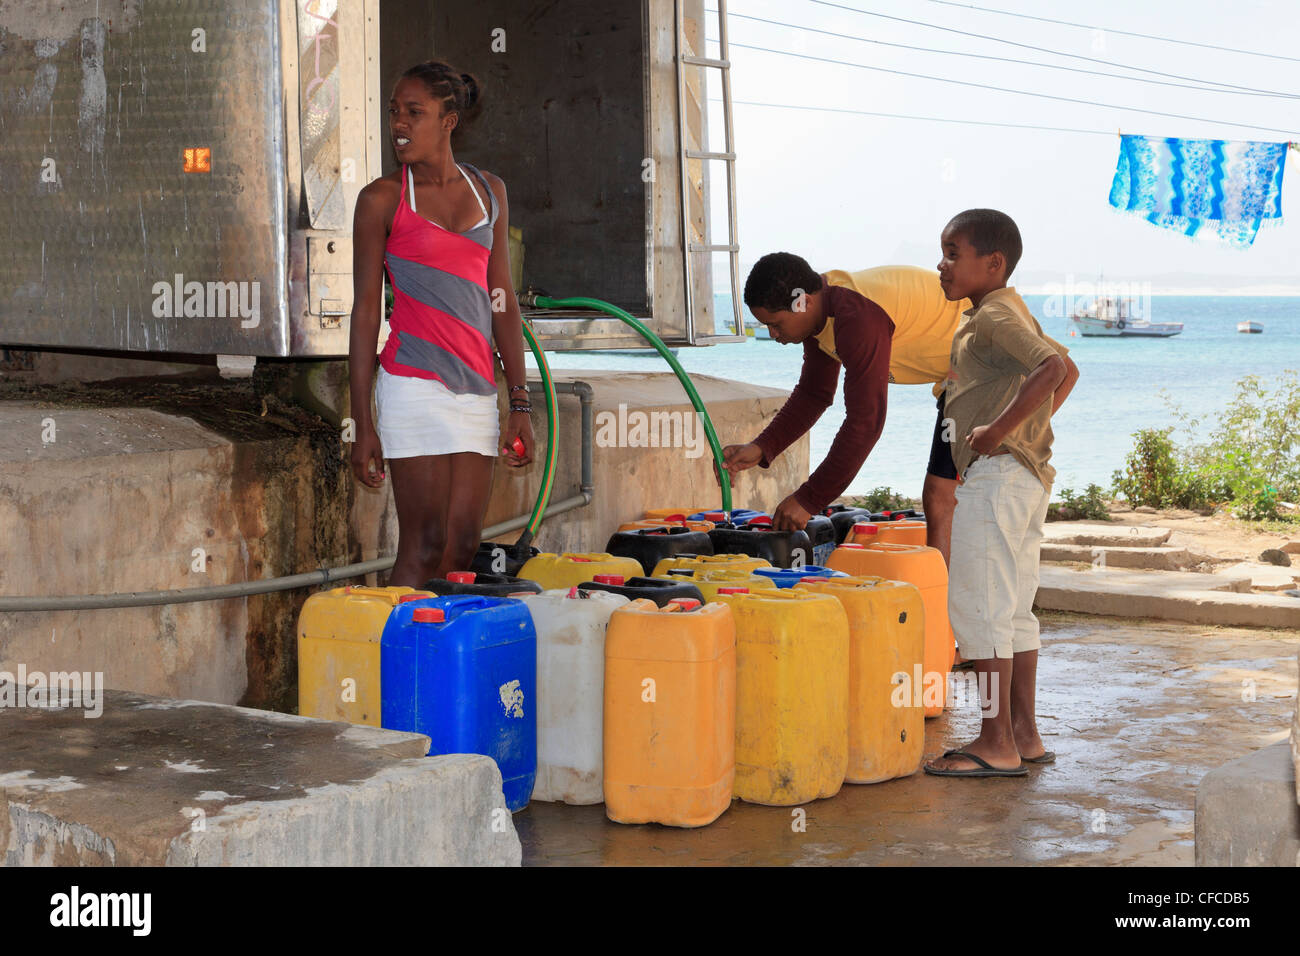 Sal Rei, Boa Vista, Cape Verde Islands. Local people with containers for collecting desalinated drinking water from - Stock Image